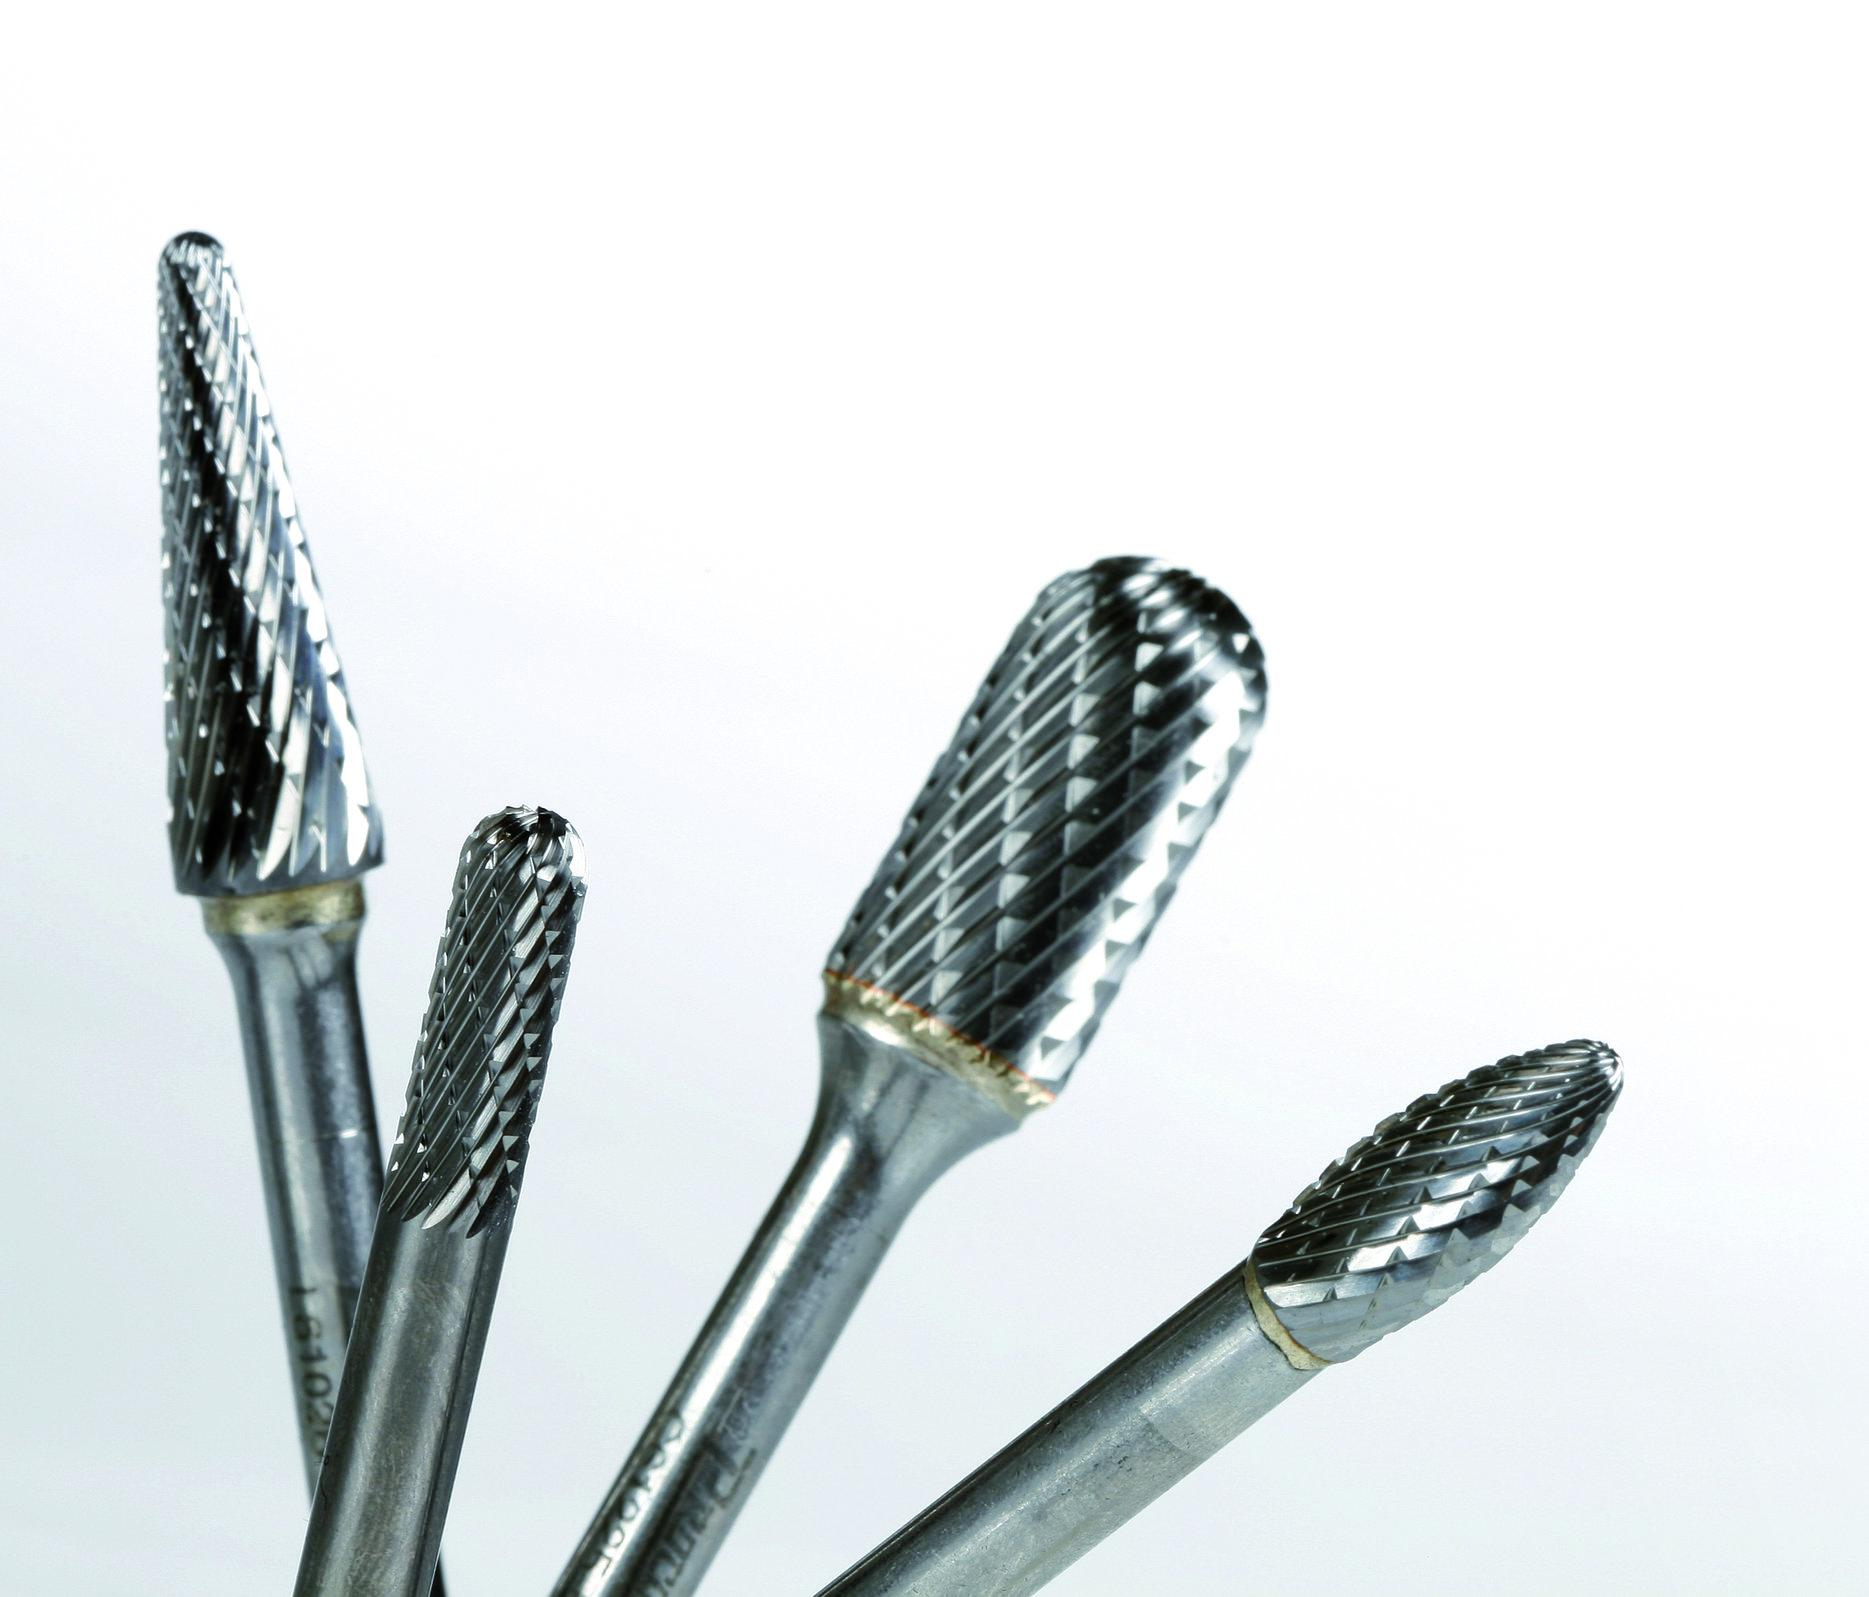 Carbide Burrs are great for removing scale and rust from stainless steel, steel and other materials. Abrasive Finishing Systems UK